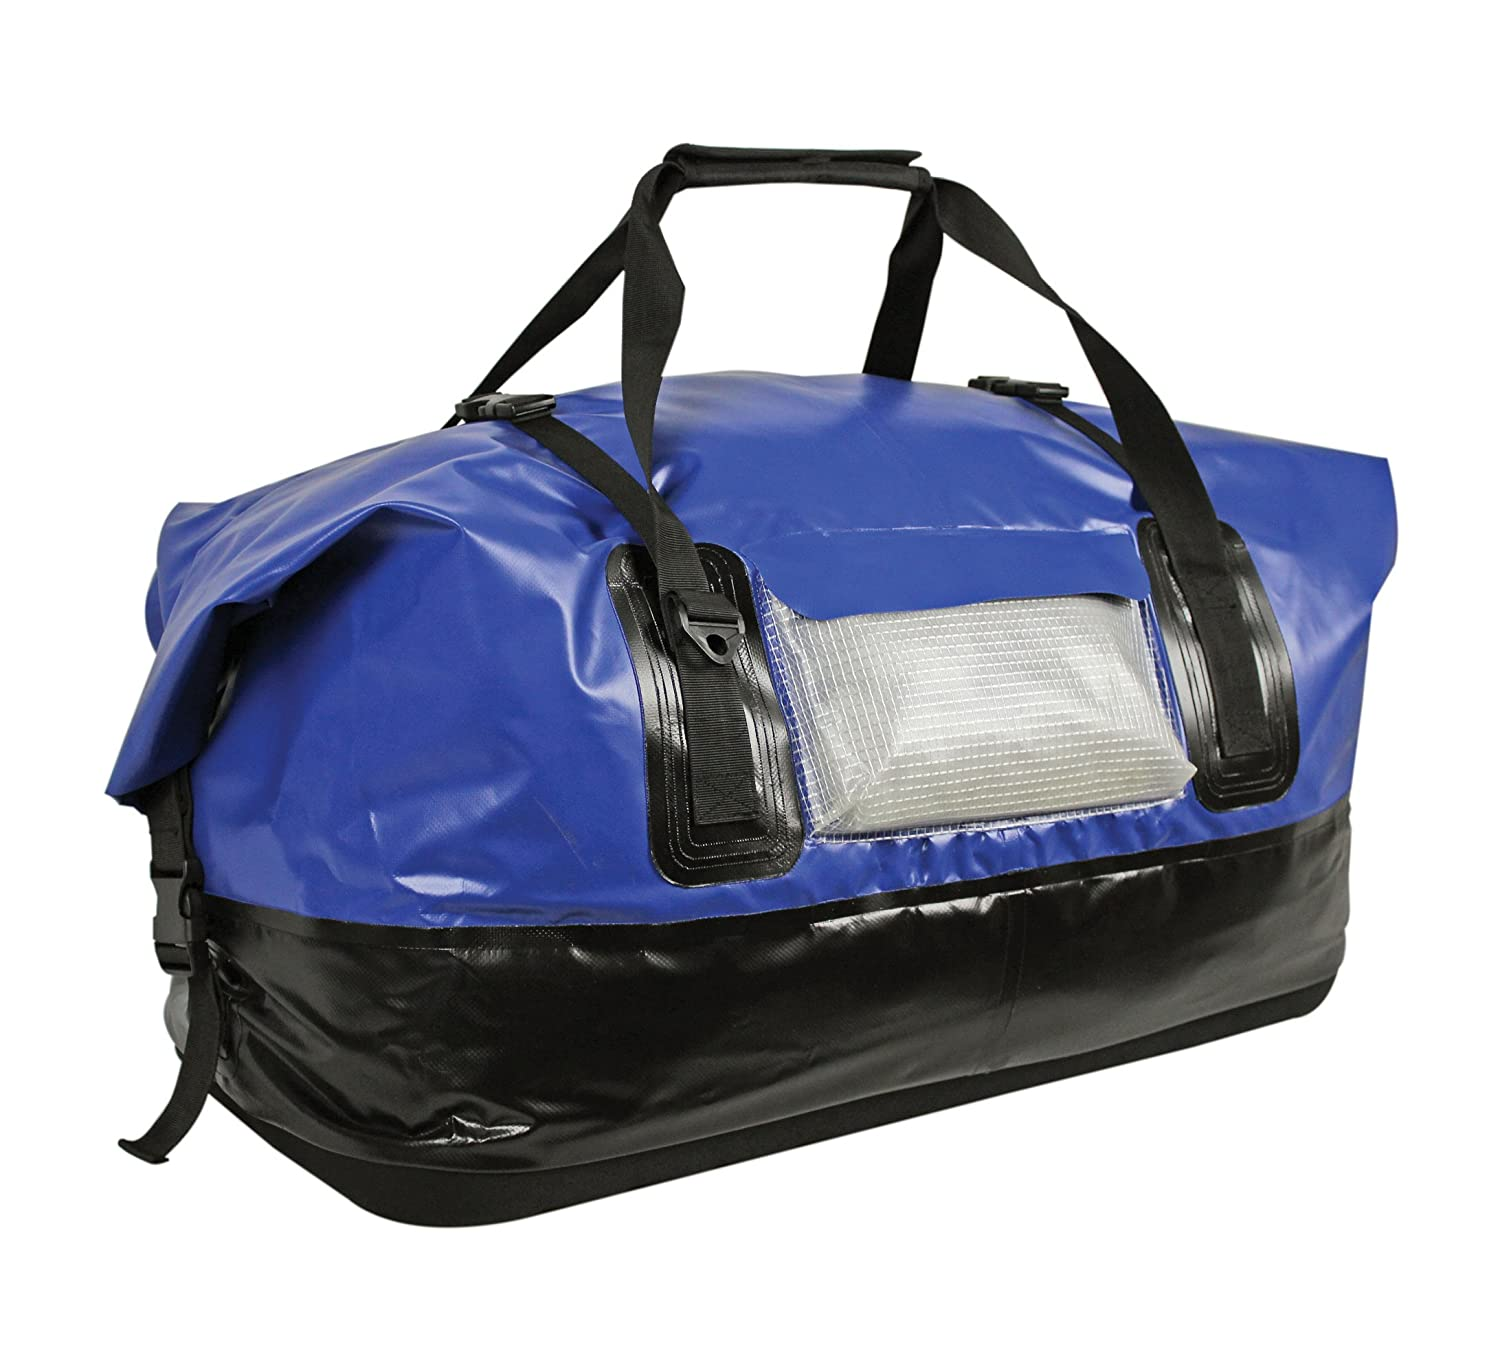 Extreme Max 3006.7345 Dry Tech Waterproof Roll-Top Duffel Bag 110 Liter - Blue Extra Large